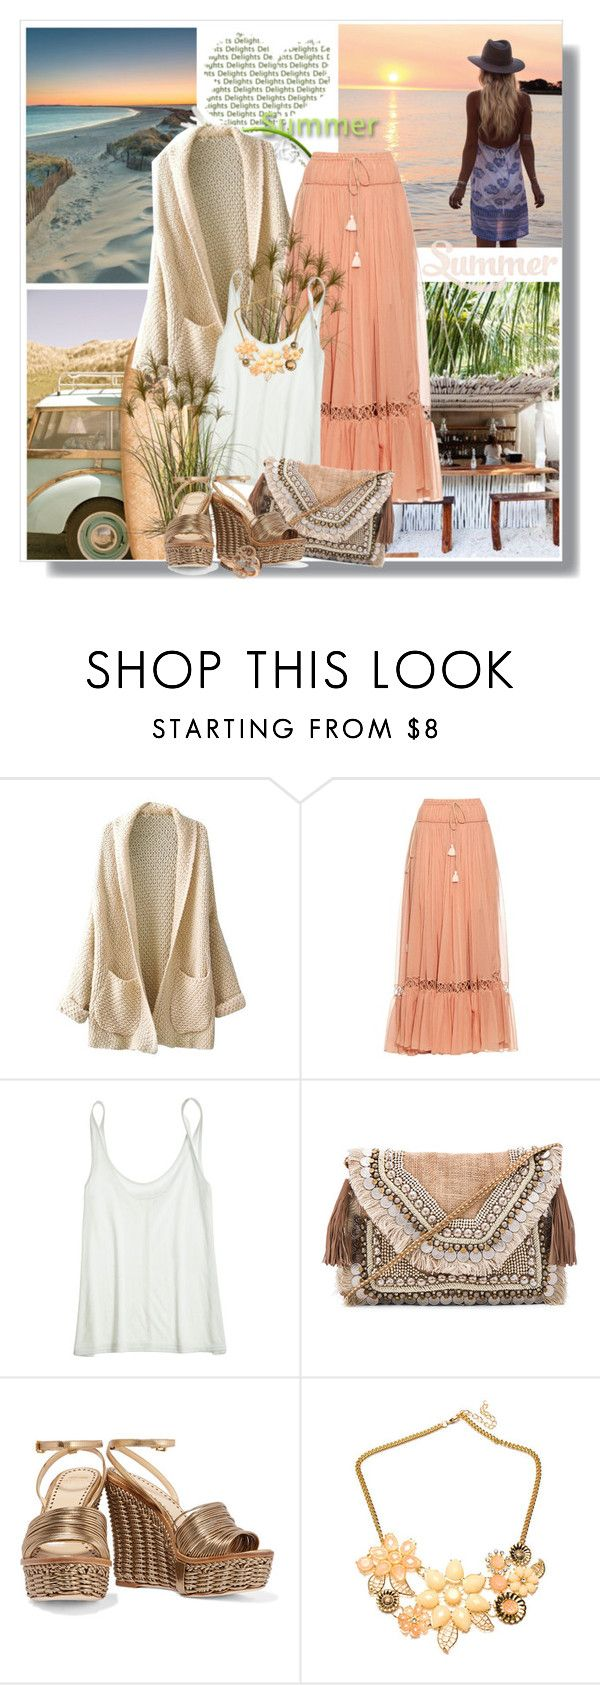 """""""Summer Closing Party"""" by cerry71 ❤ liked on Polyvore featuring Chloé, Calypso St. Barth, Shashi, Moschino and LE VIAN"""